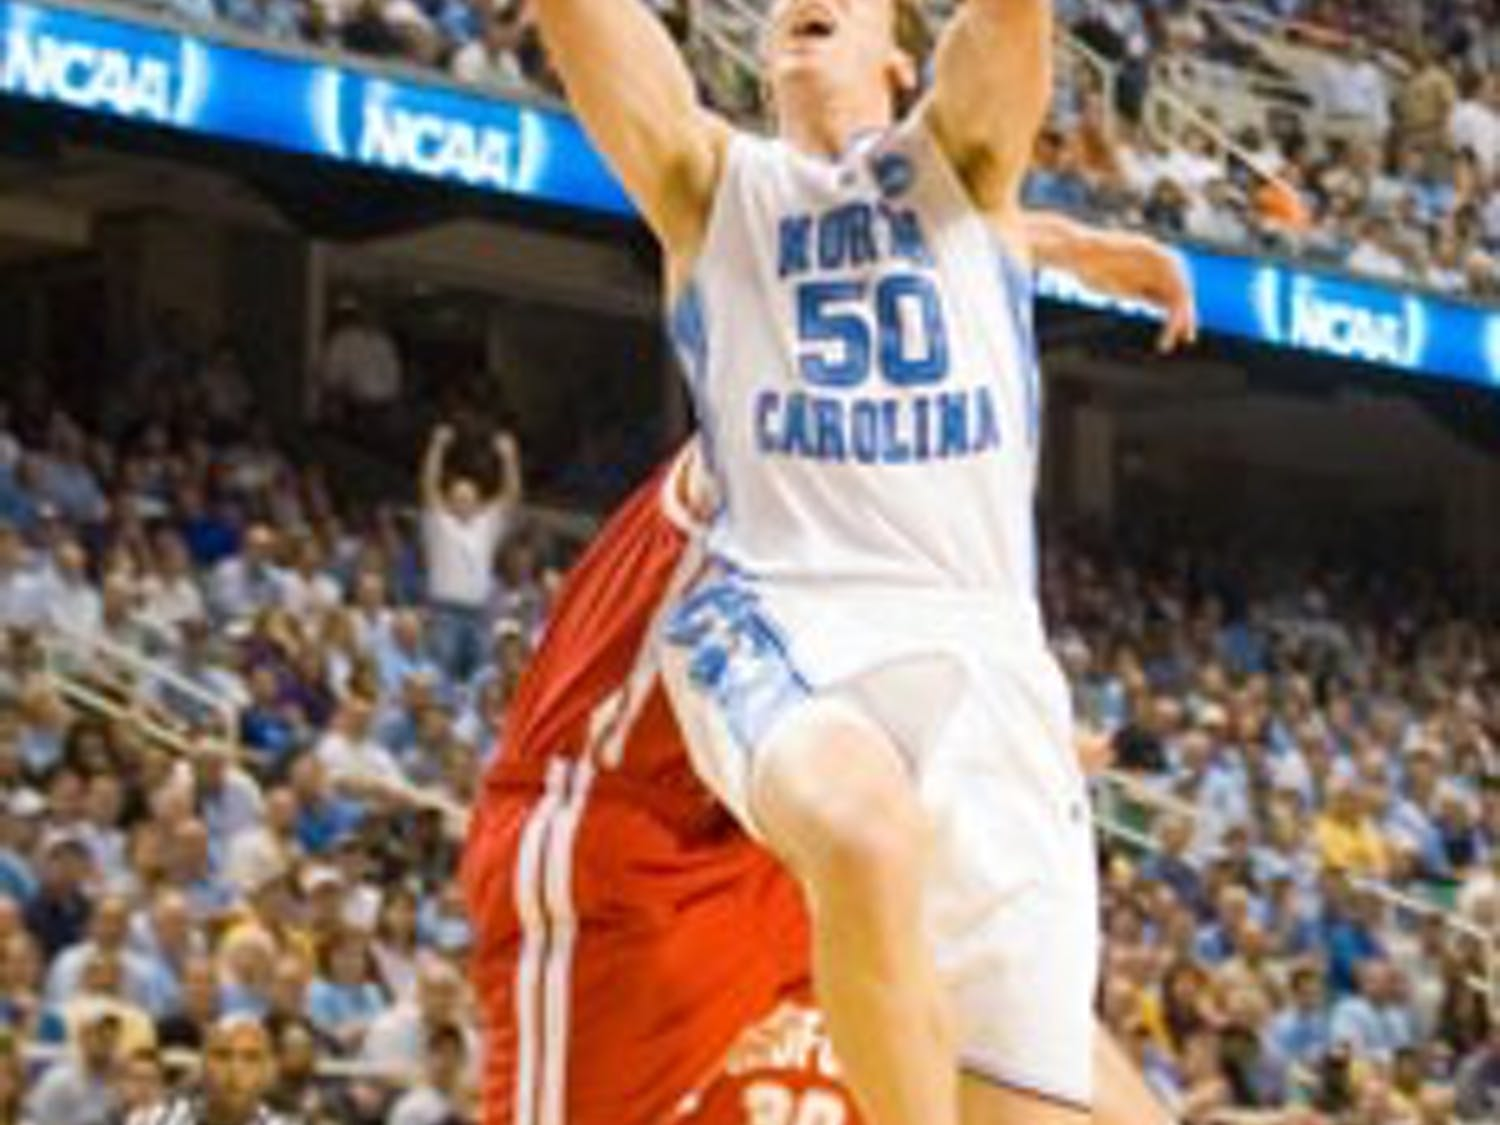 Less than five minutes into North Carolina?s first-round NCAA game against Radford on Thursday senior Tyler Hansbrough scored his third point of the game to clench a new all-time ACC career scoring record.